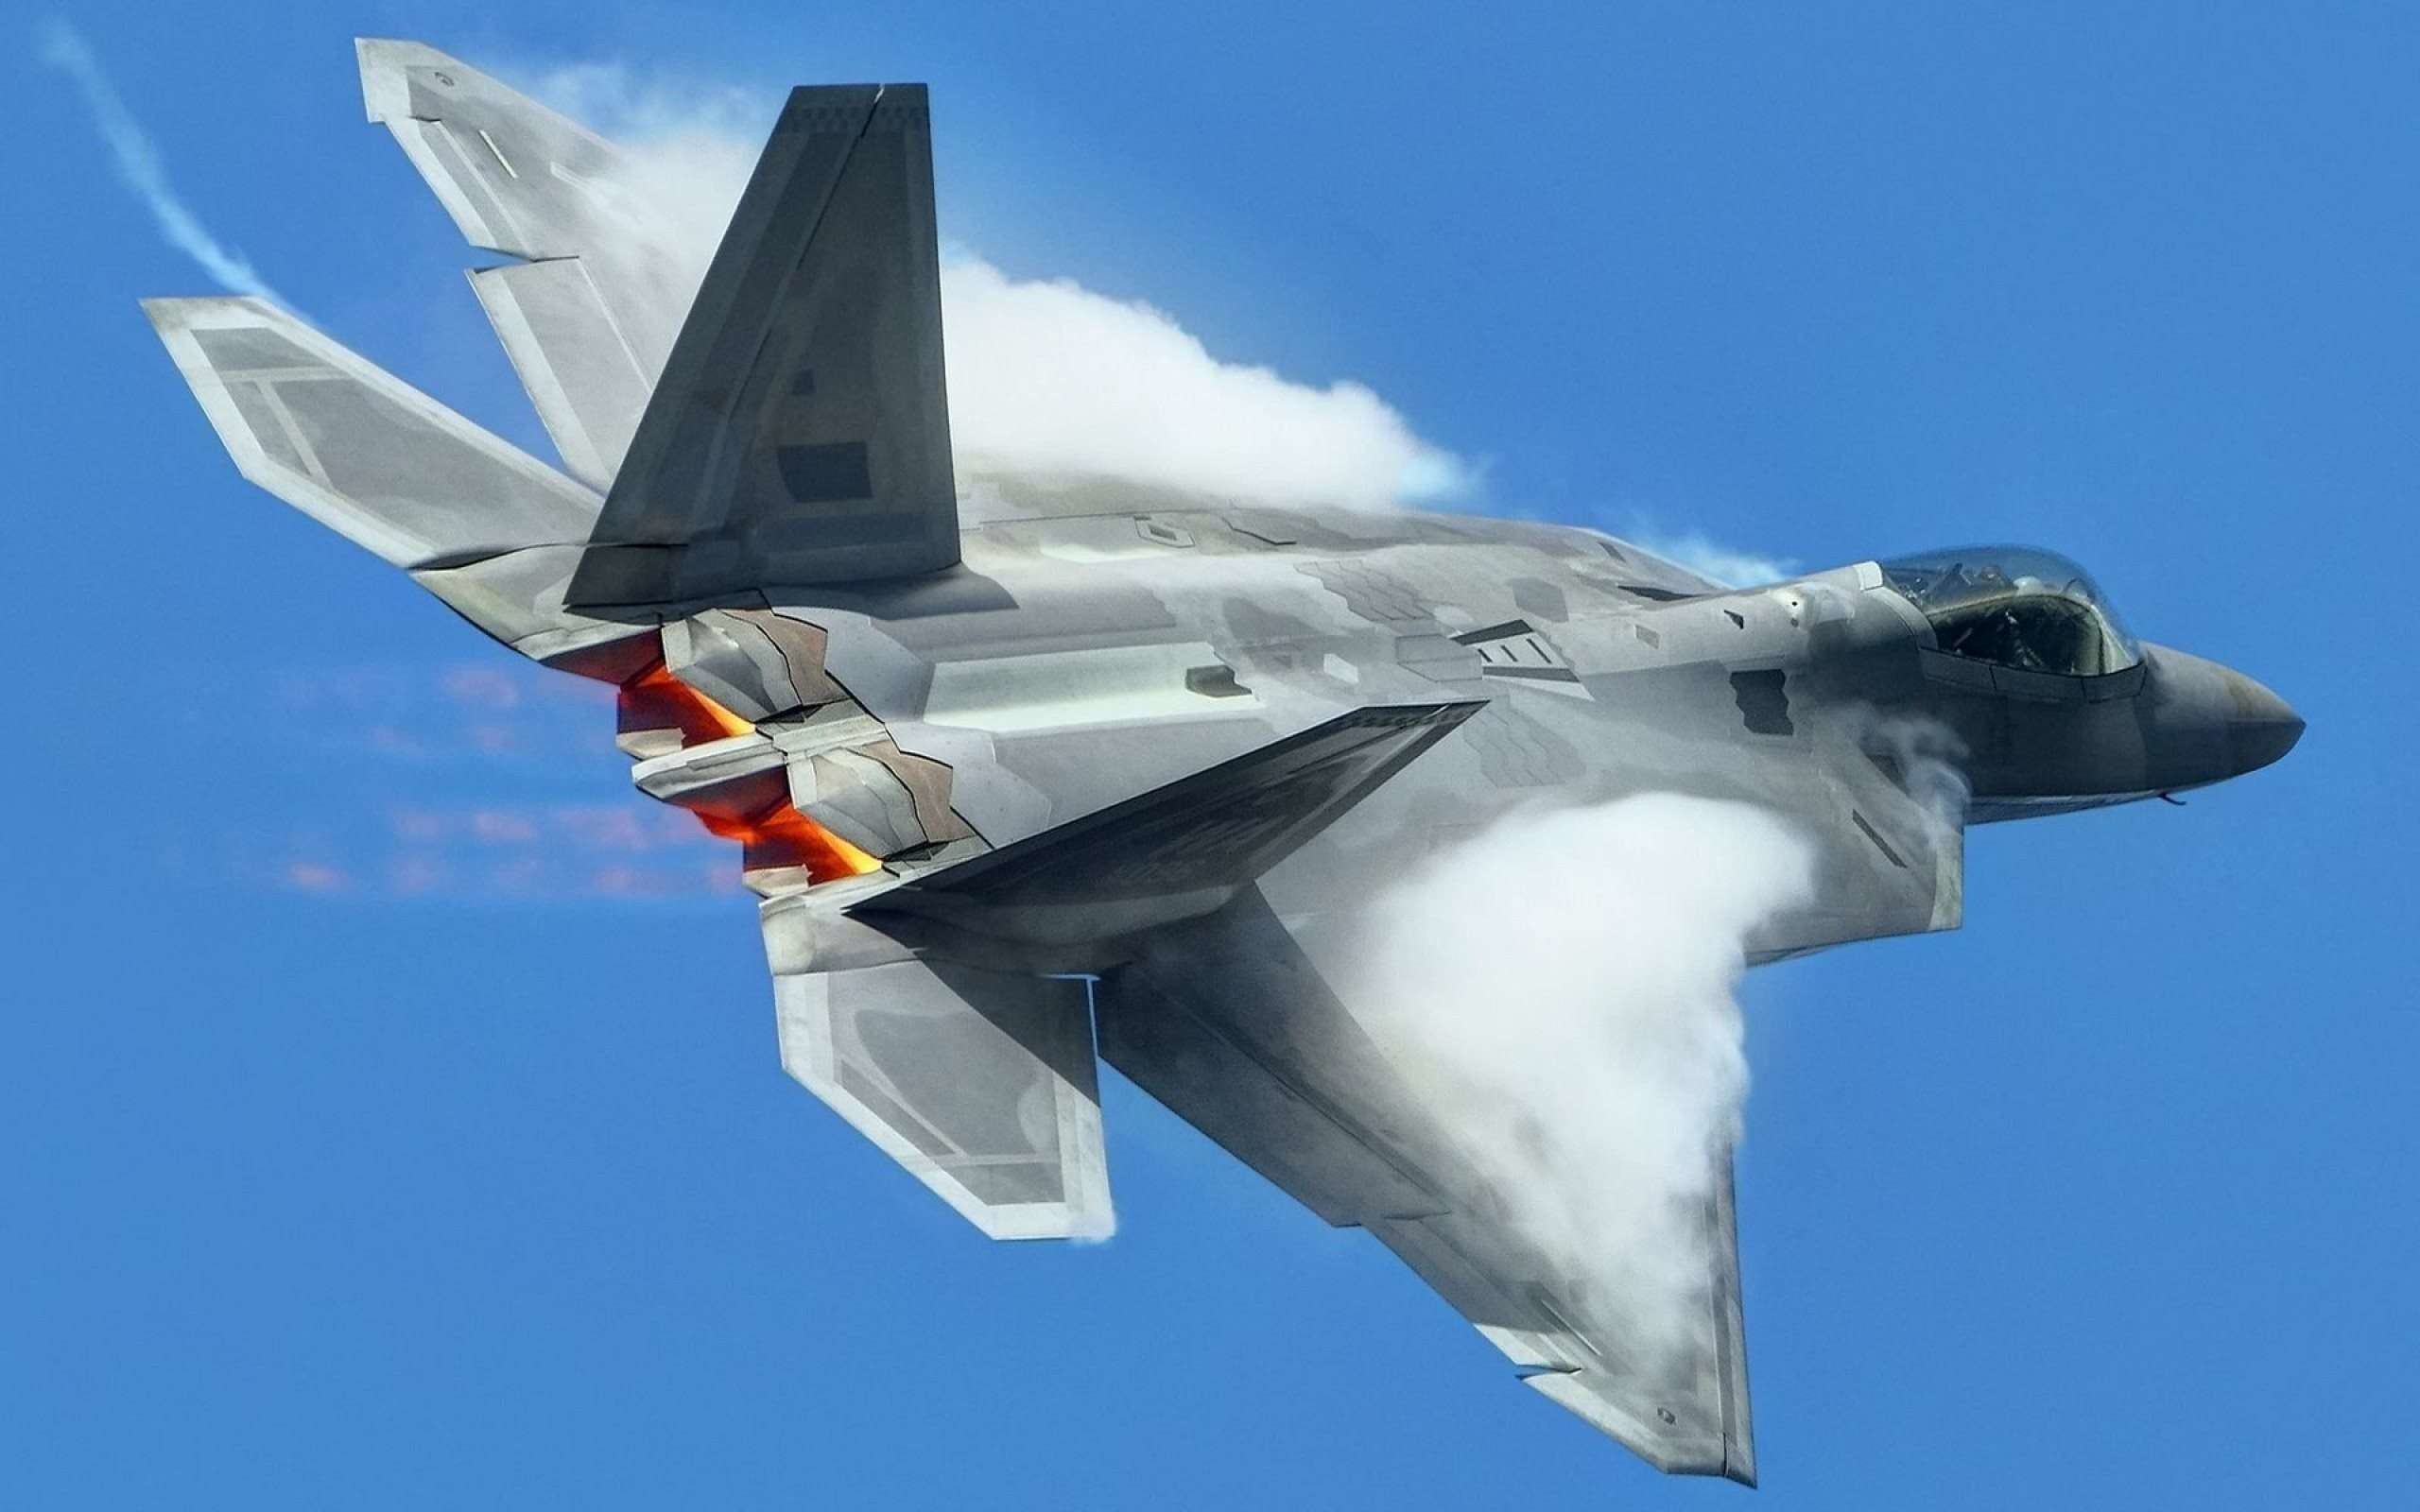 2560x1600 F-22 Raptor Widescreen Wallpapers - HD Wallpaper | HD Wallpapers .